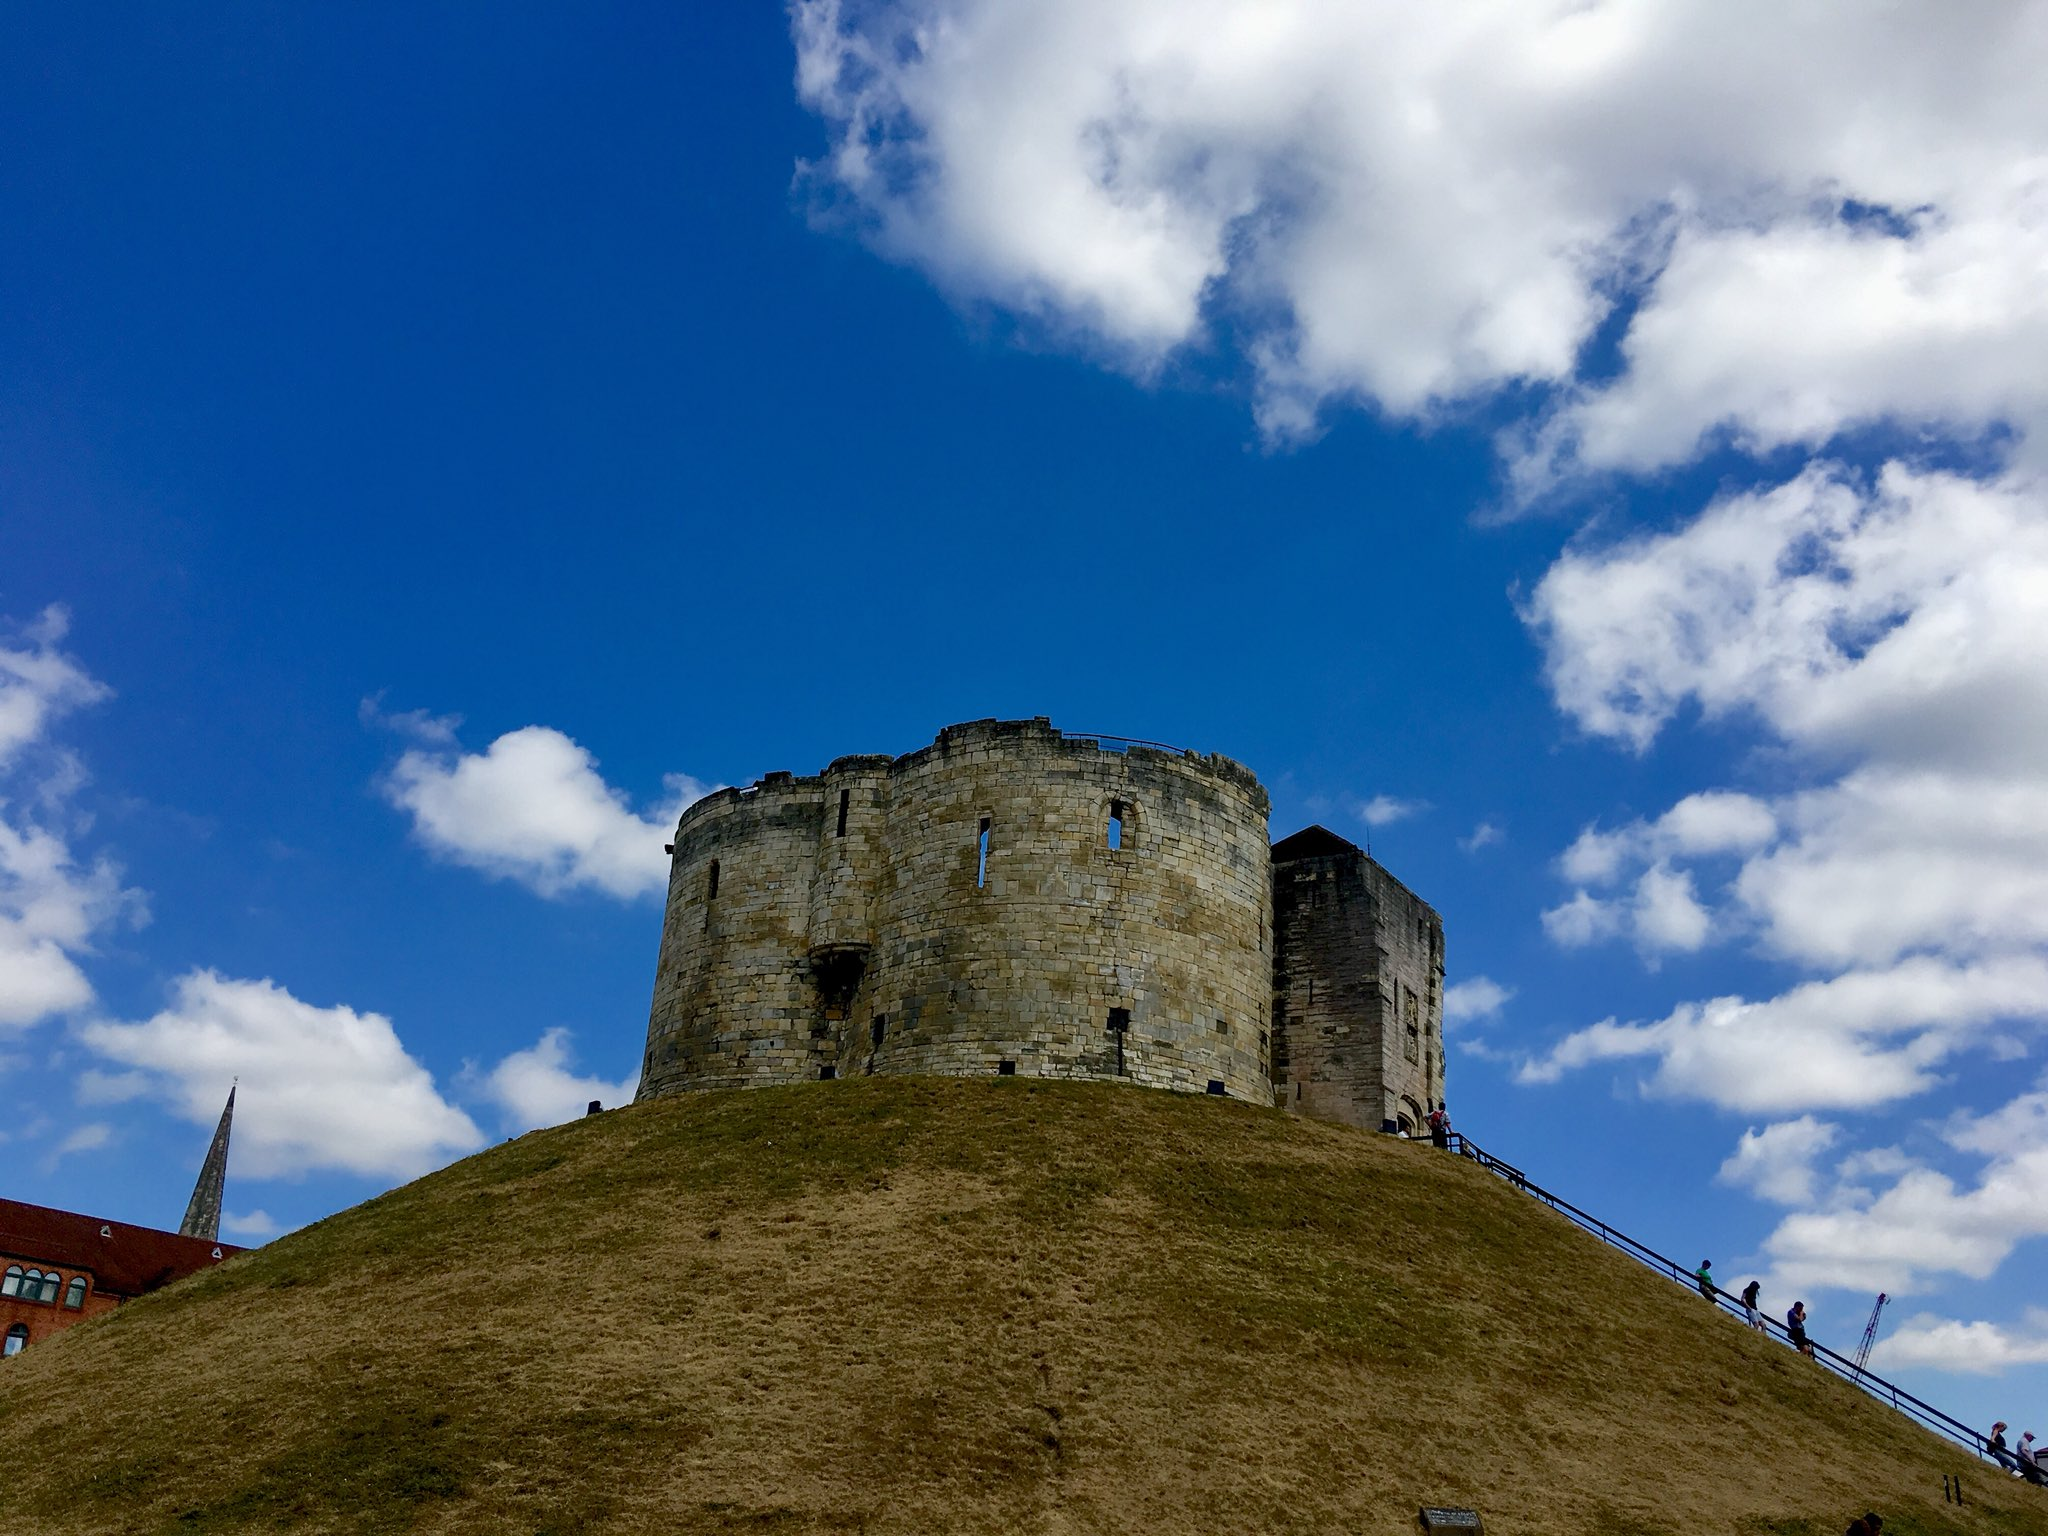 Odyssey England 2018, Raised by William the Conqueror. It is almost all that remains of York Castle, and has served as a prison and a royal mint in its time. https://t.co/Ka0Fy0V06p